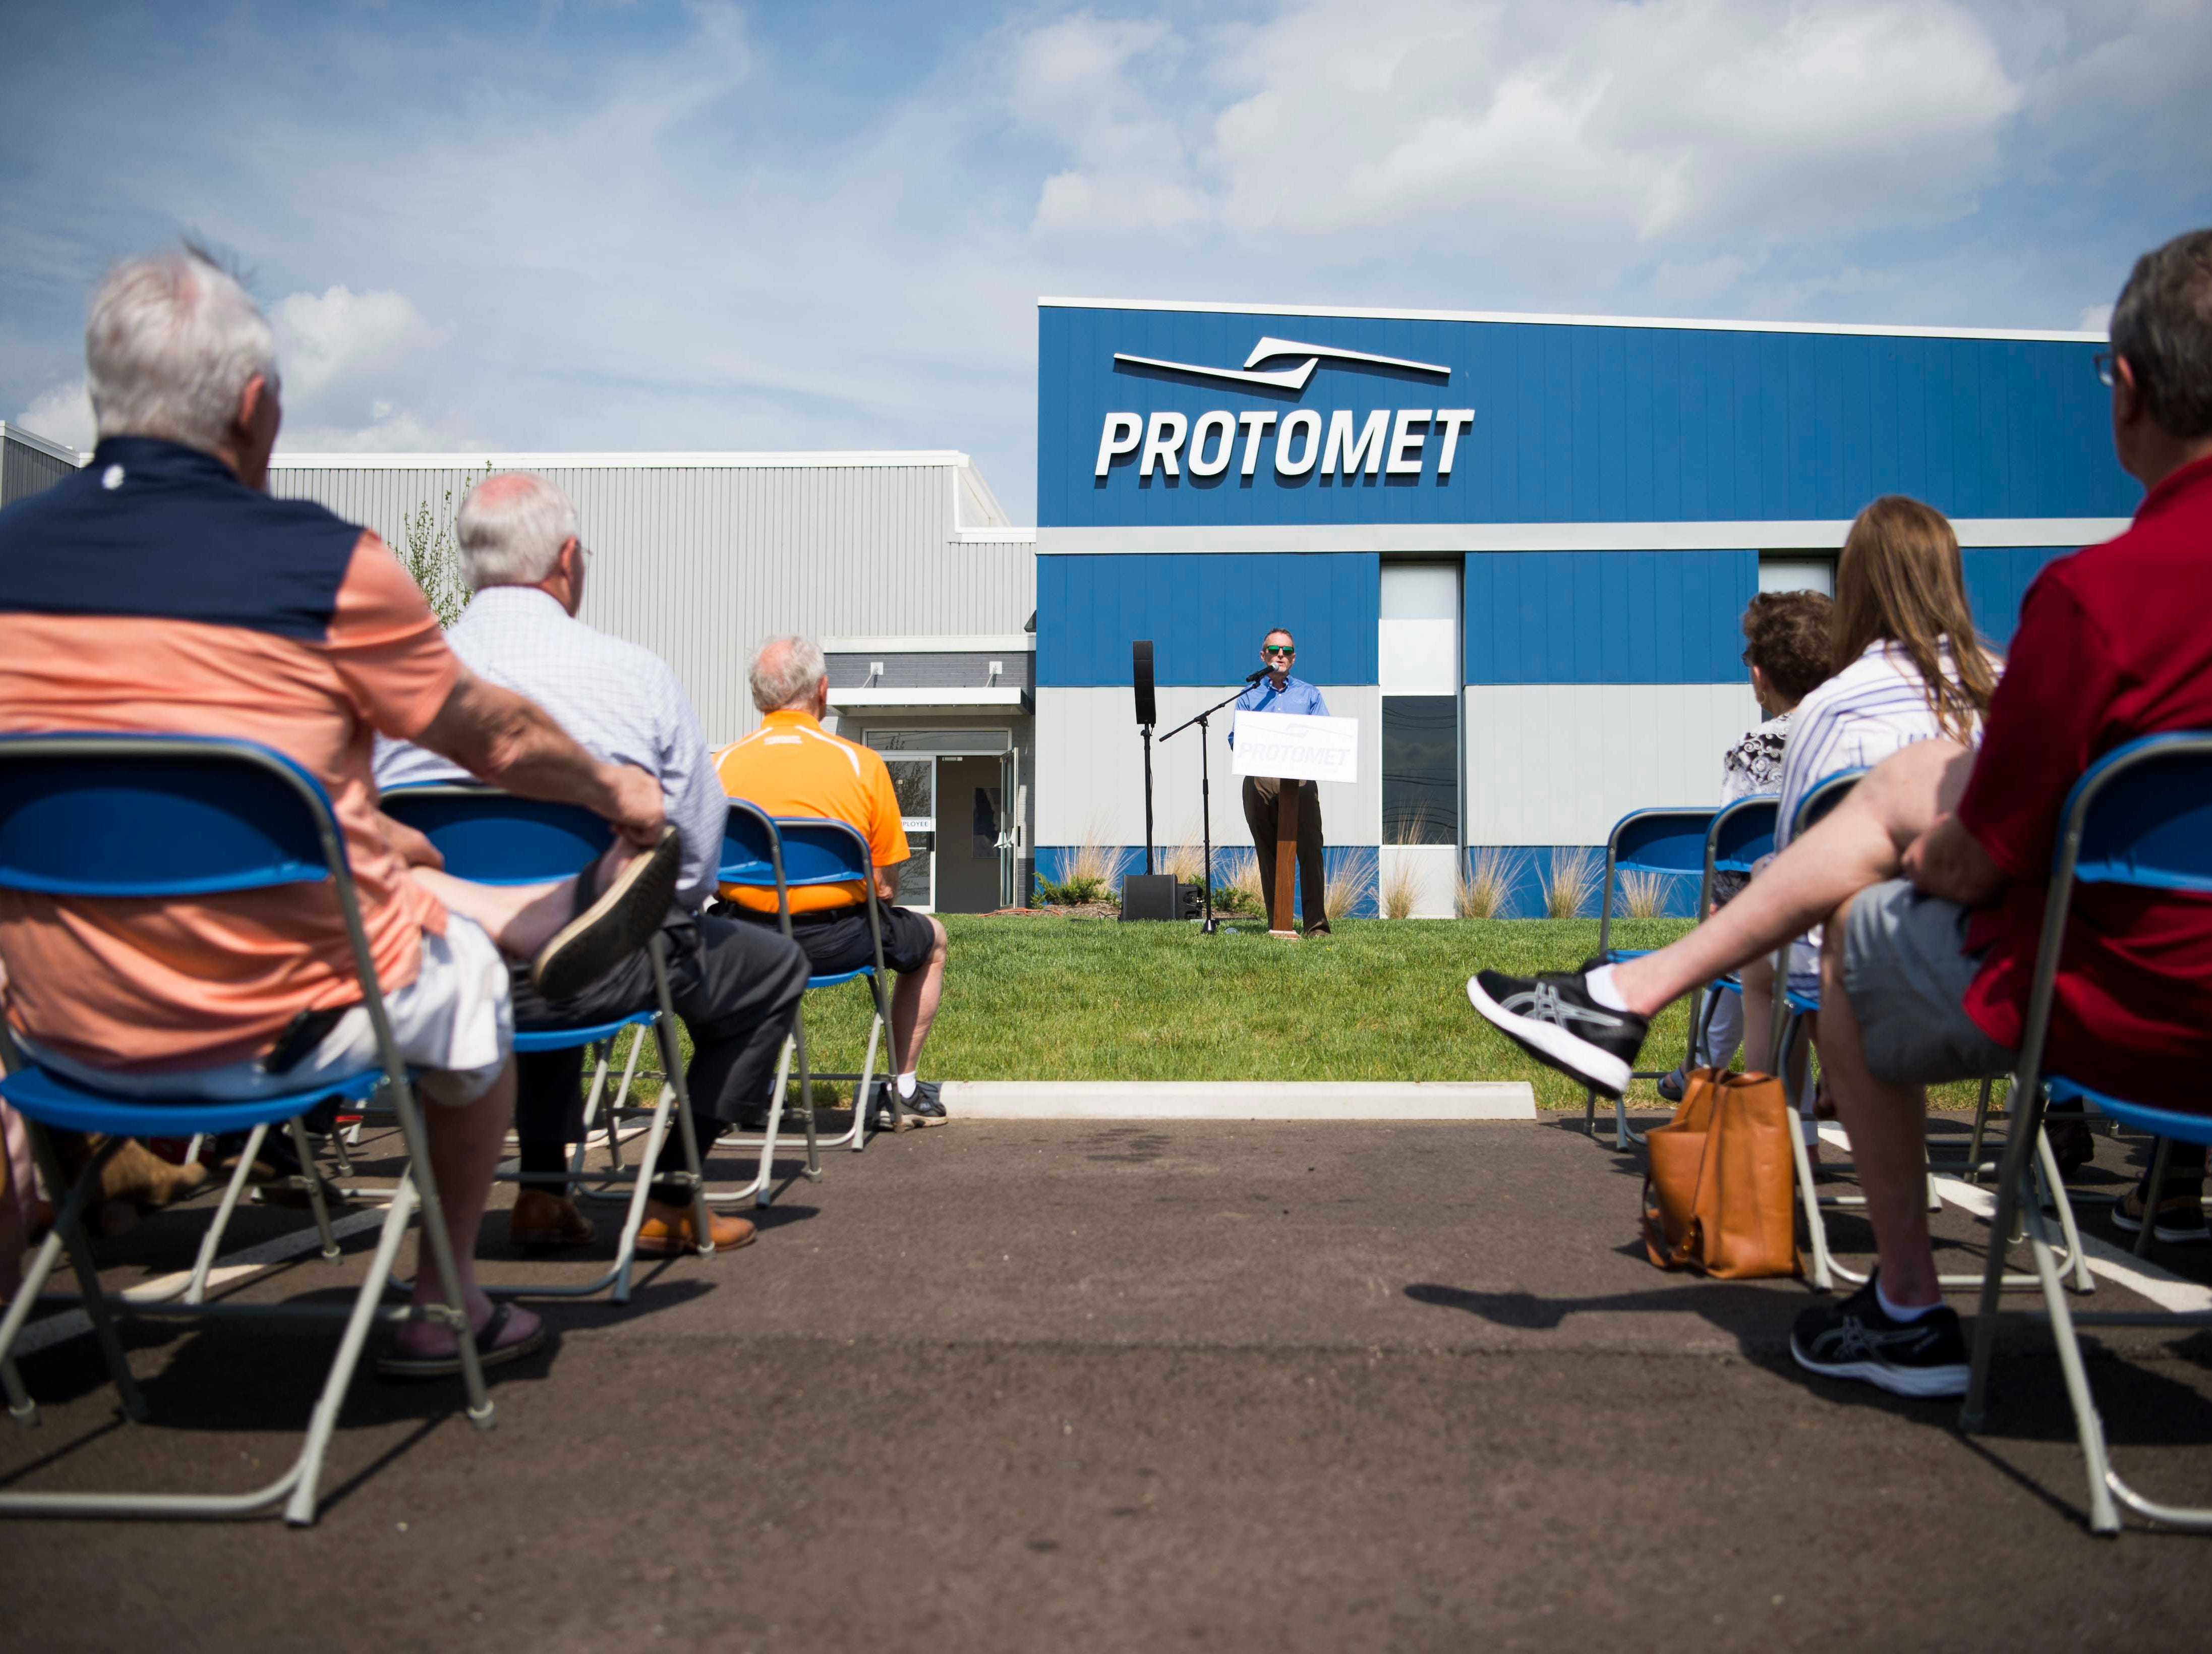 Jeff Bohanan, founder and CEO of Protomet makes remarks at the opening of Protomet Corporation's $30 million, 244,000 square foot plant in Loudon County Thursday, April 18, 2019. When fully staffed the facility will create 200 new jobs for Loudon County.